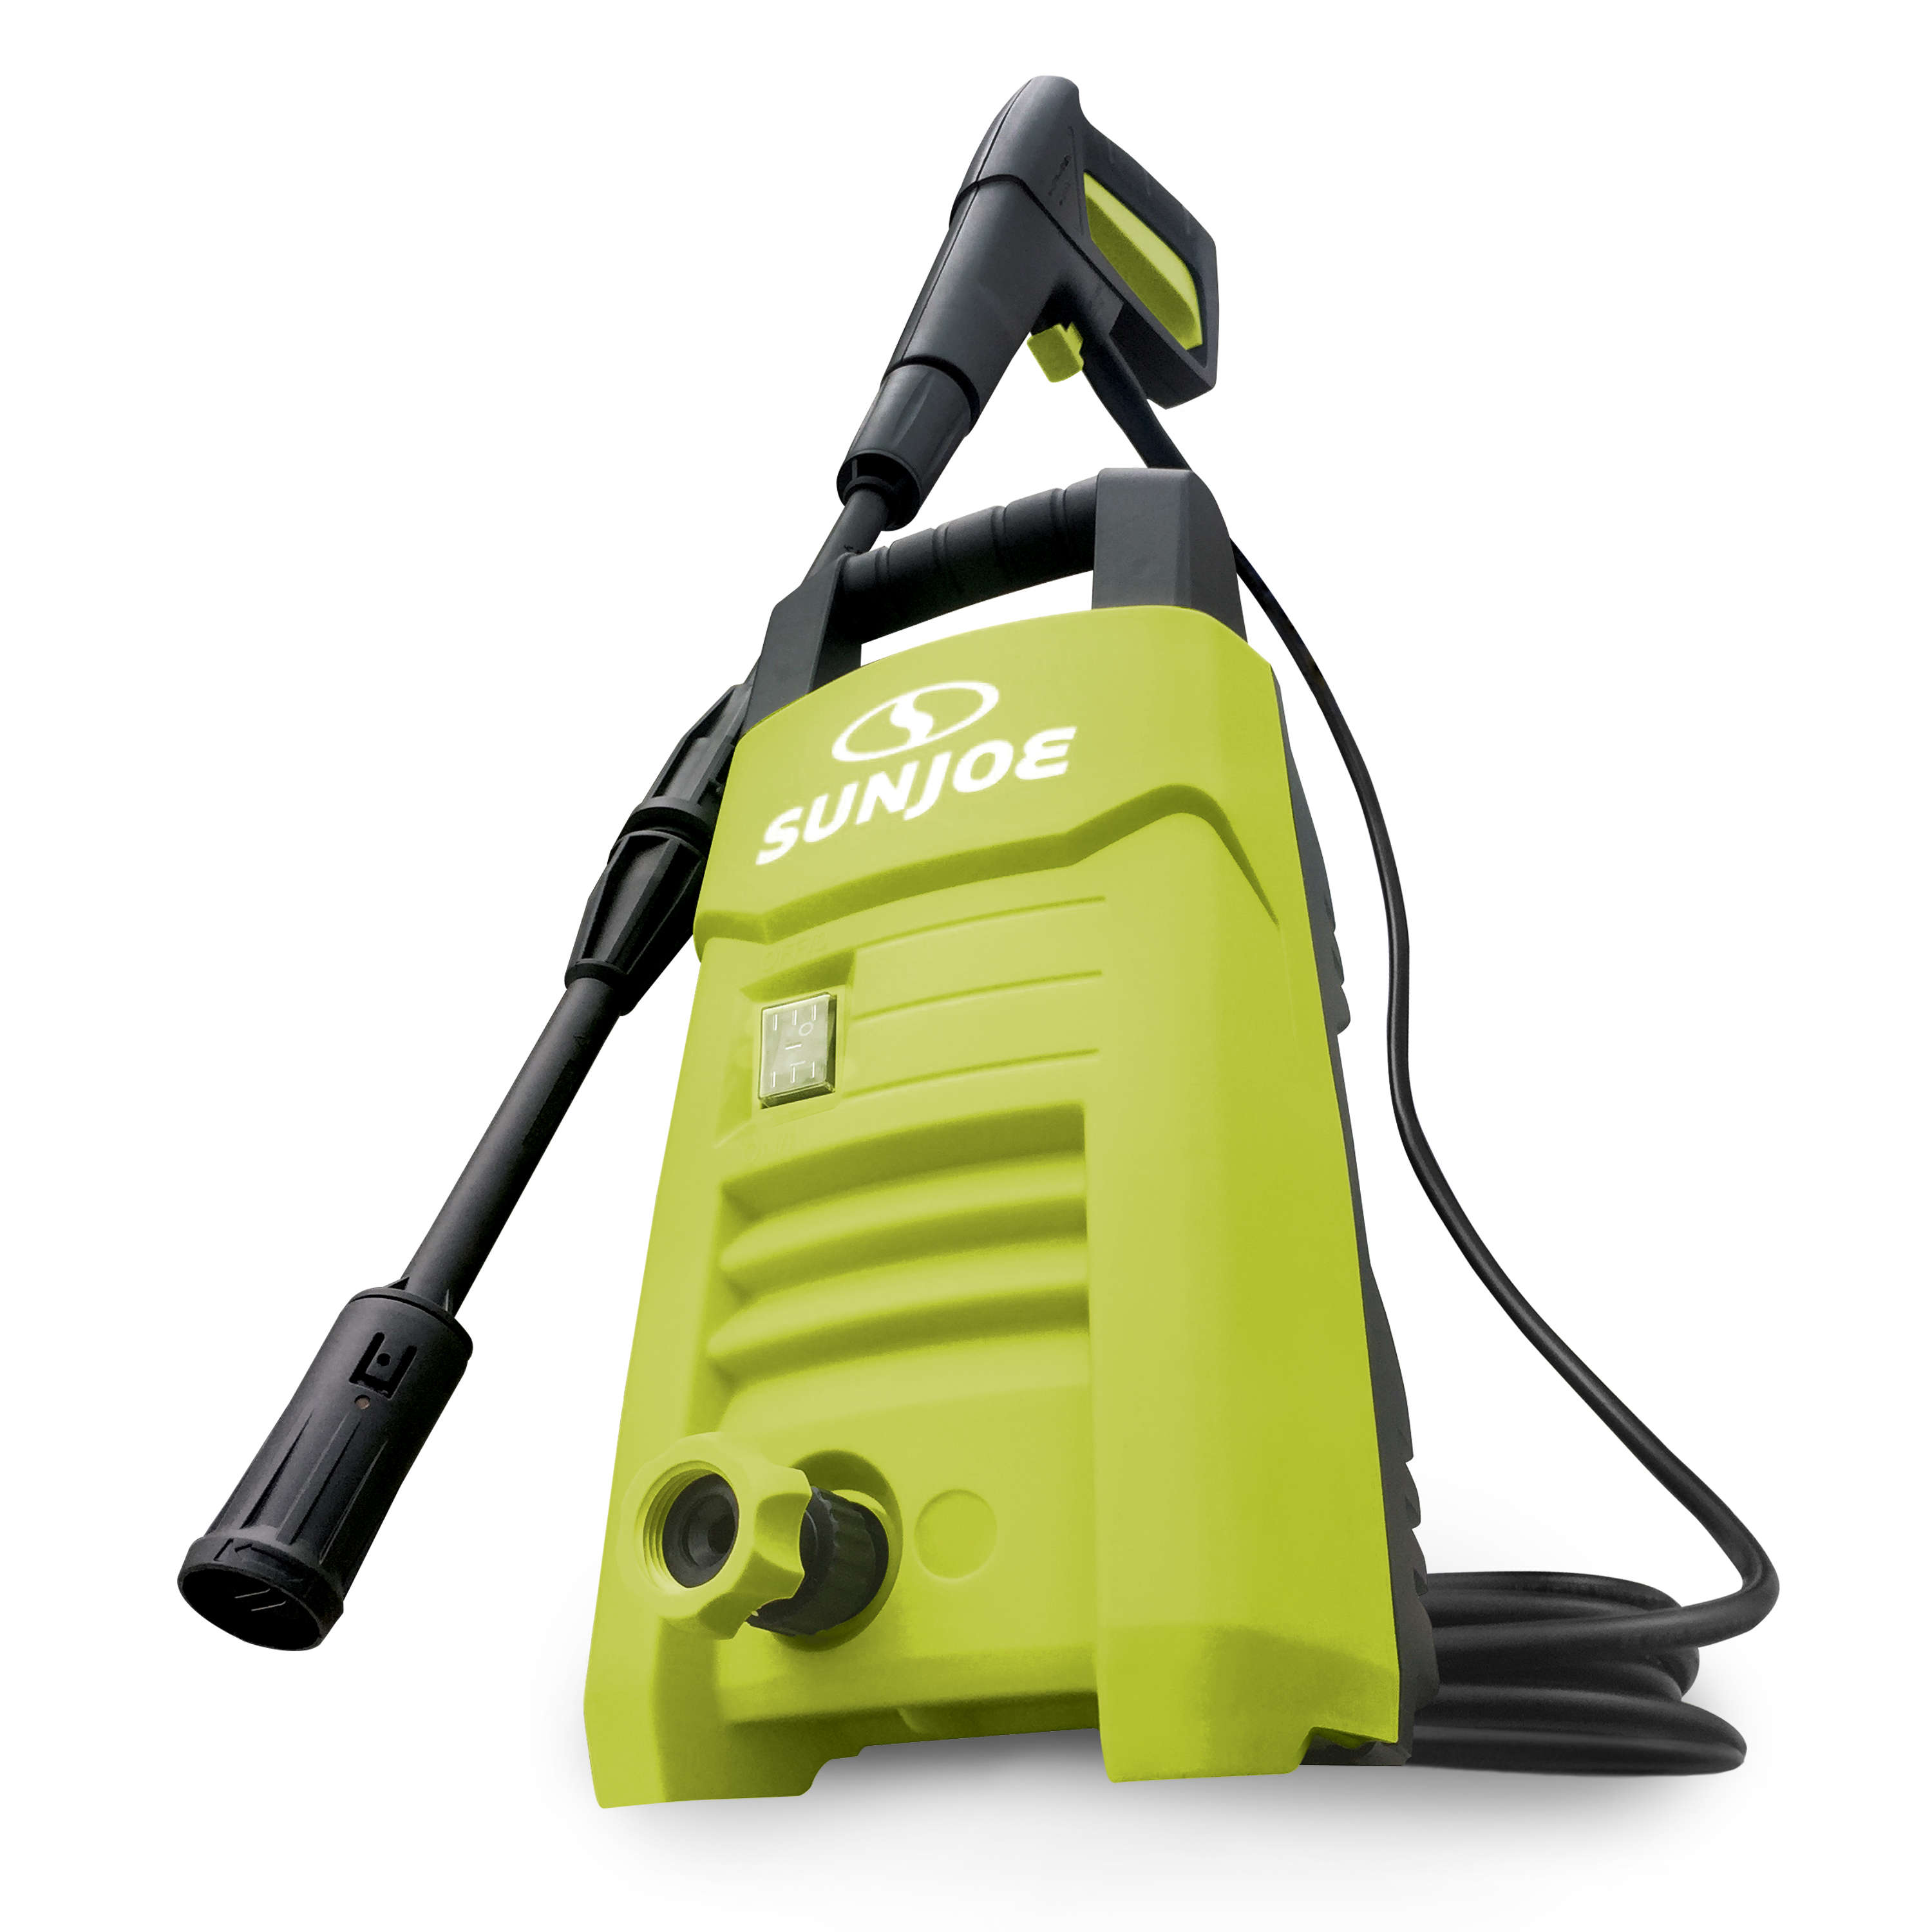 Sun Joe Spx200 E Electric Pressure Washer | 1350 Psi · 1.45 Gpm · 10.0 Amp by Sun Joe